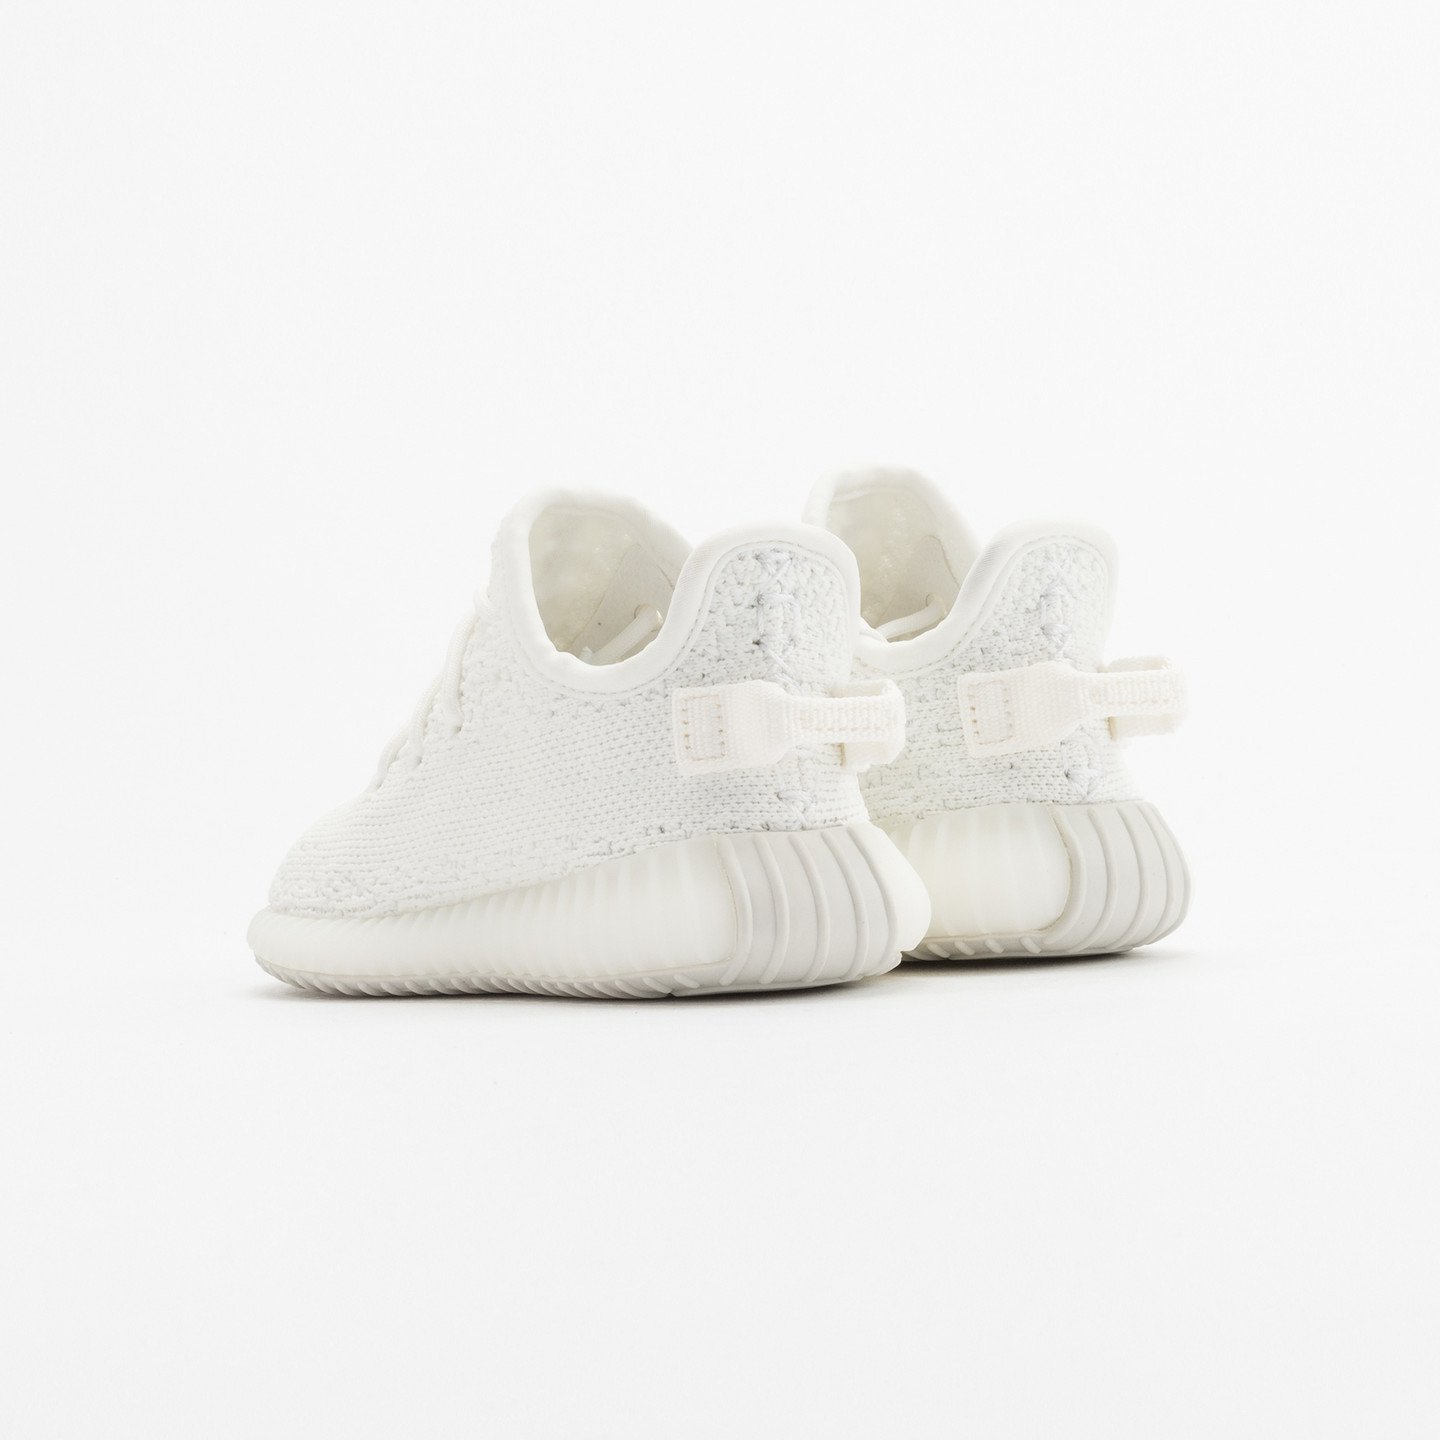 Adidas Yeezy Boost 350 V2 Infant White / Clear White BB6373